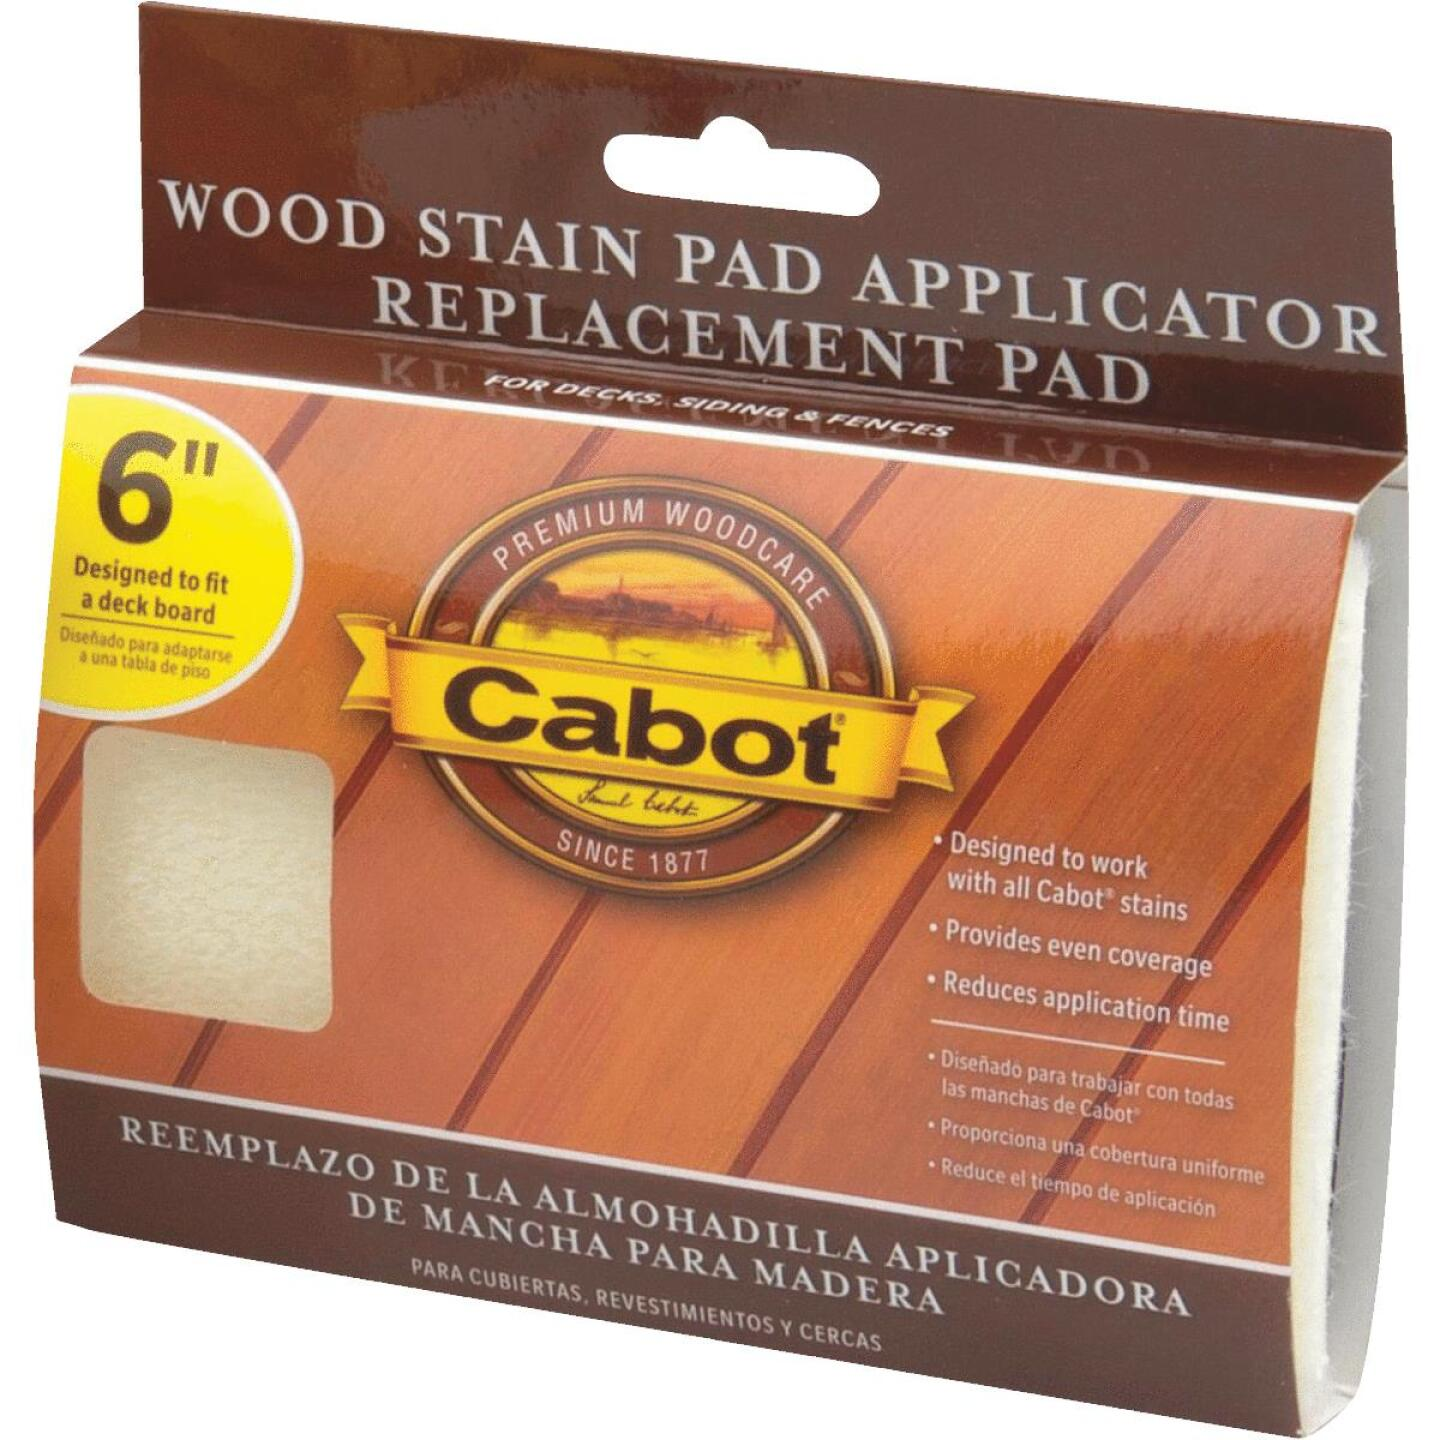 Cabot Synthetic Fabric 6 In. Stain Pad Applicator Image 1